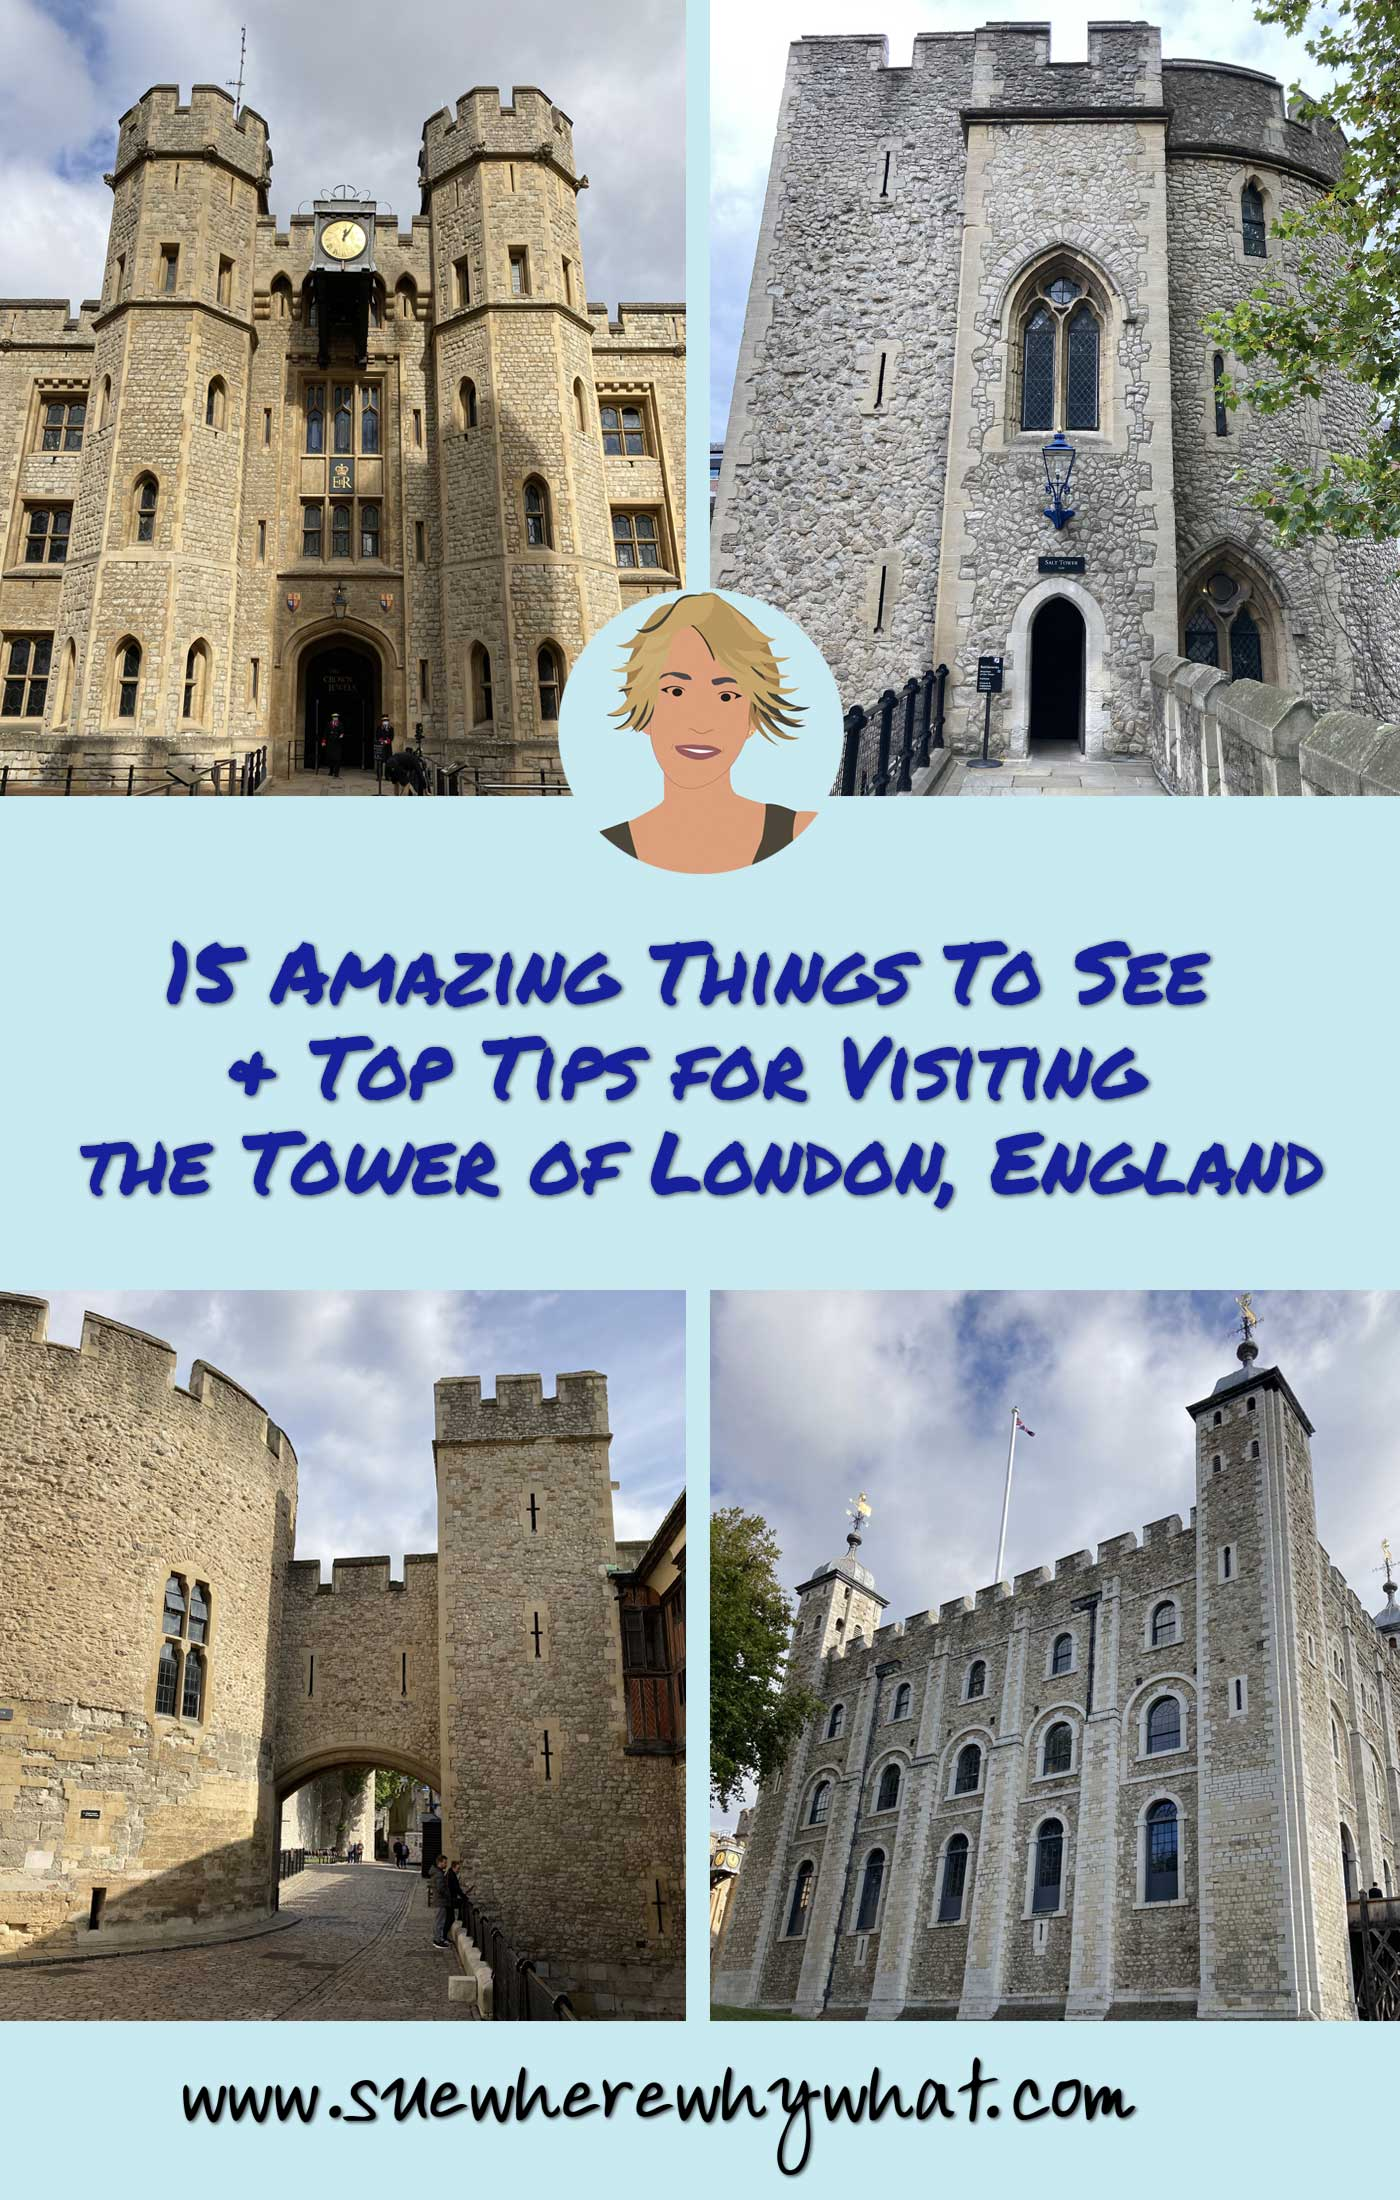 15 Amazing Things To See & Top Tips for Visiting the Tower of London